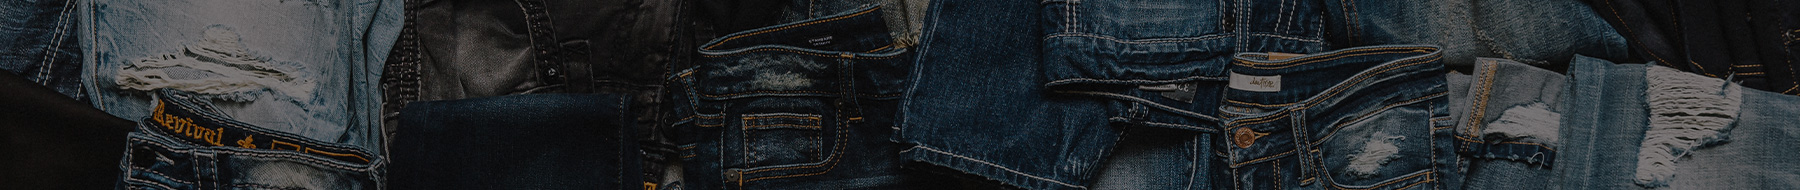 A variety of Men's and Women's Buckle denim